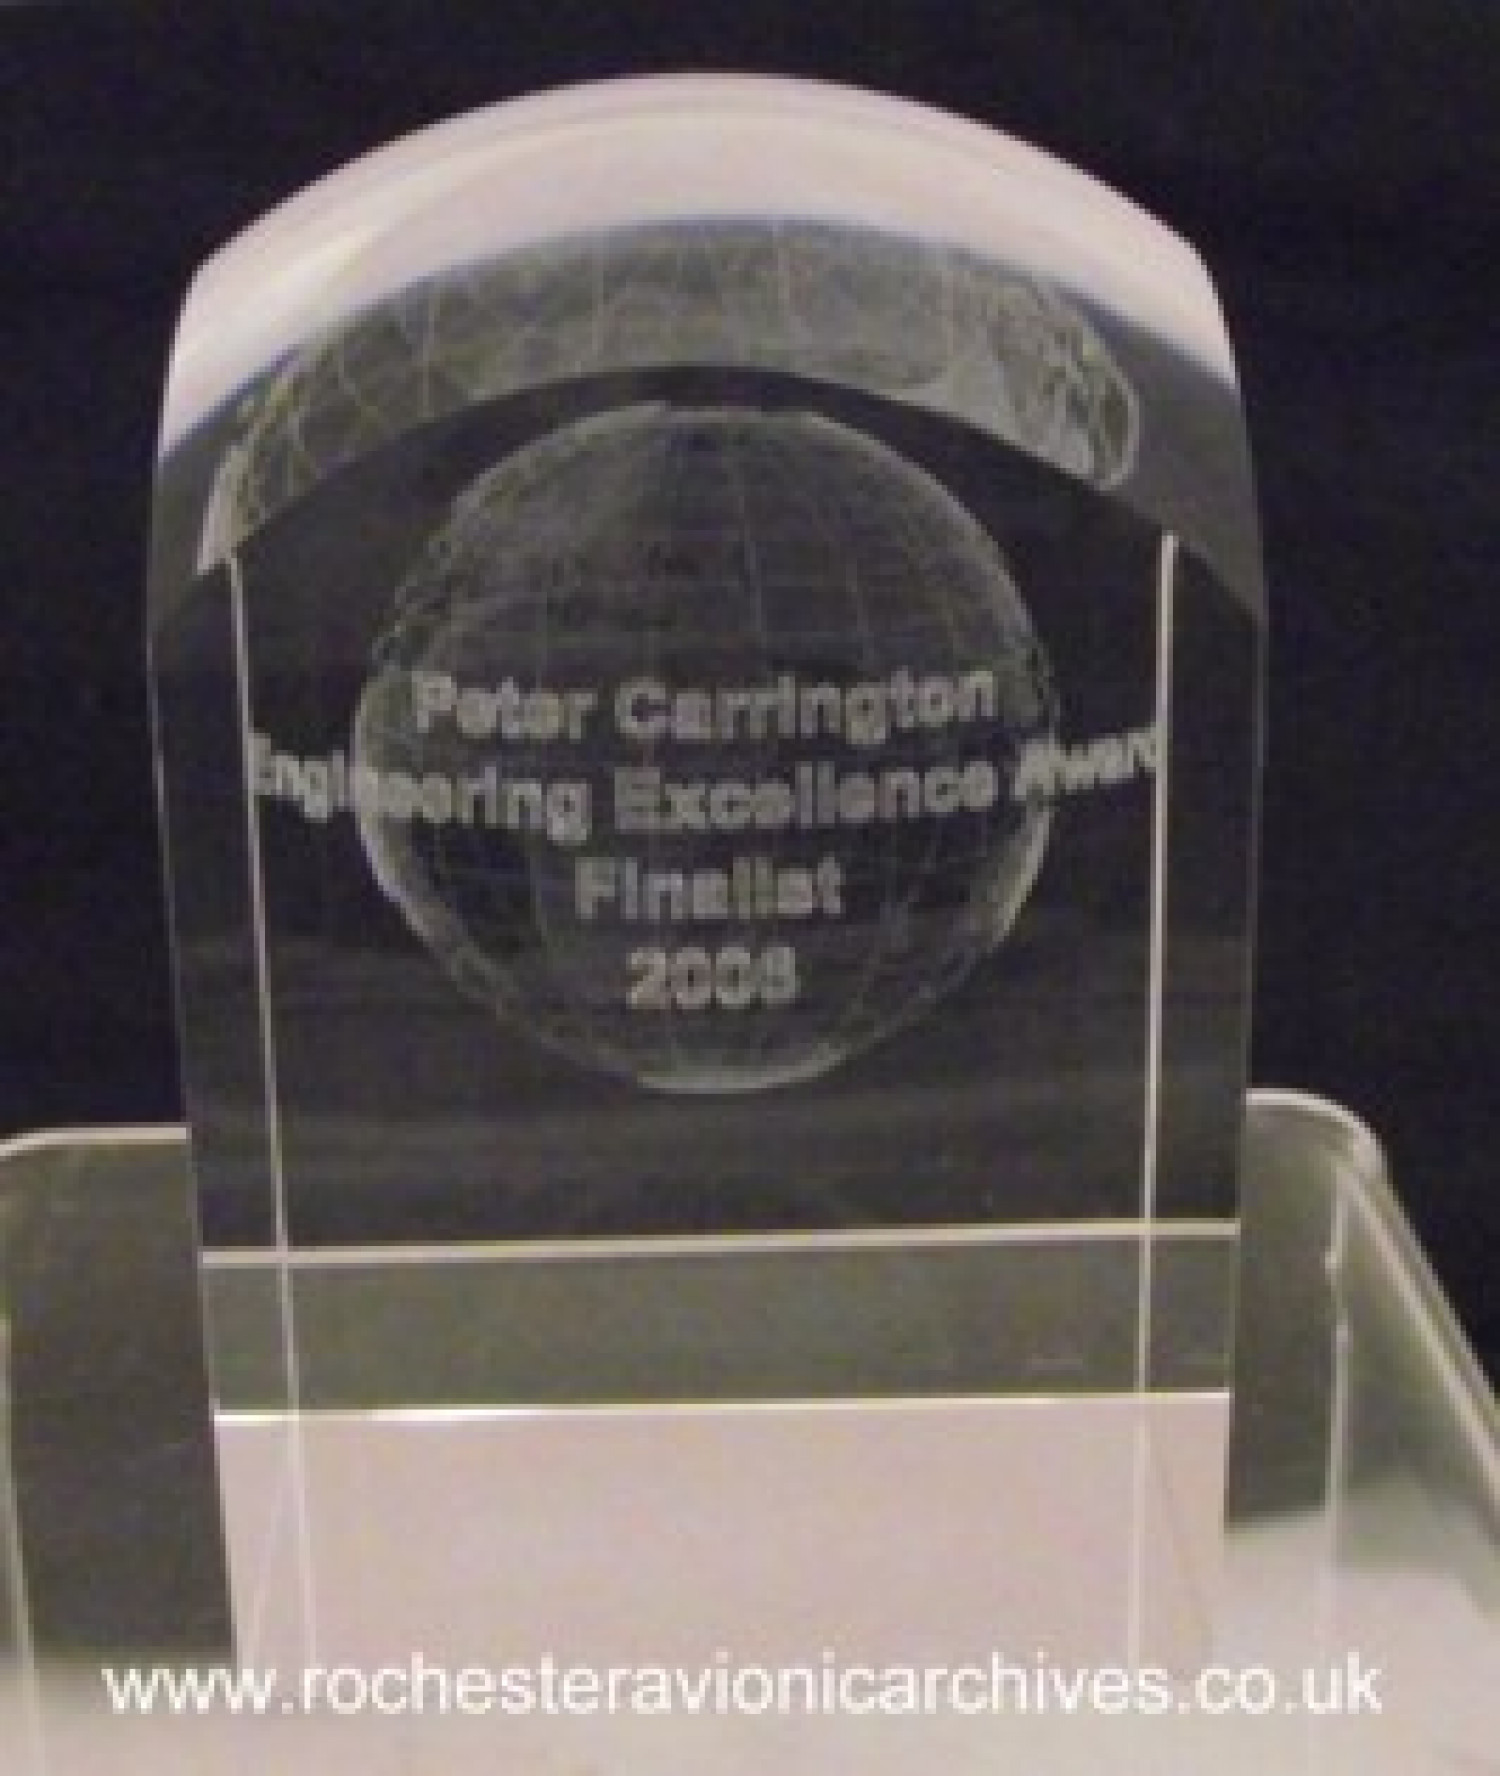 Peter Carrington Award